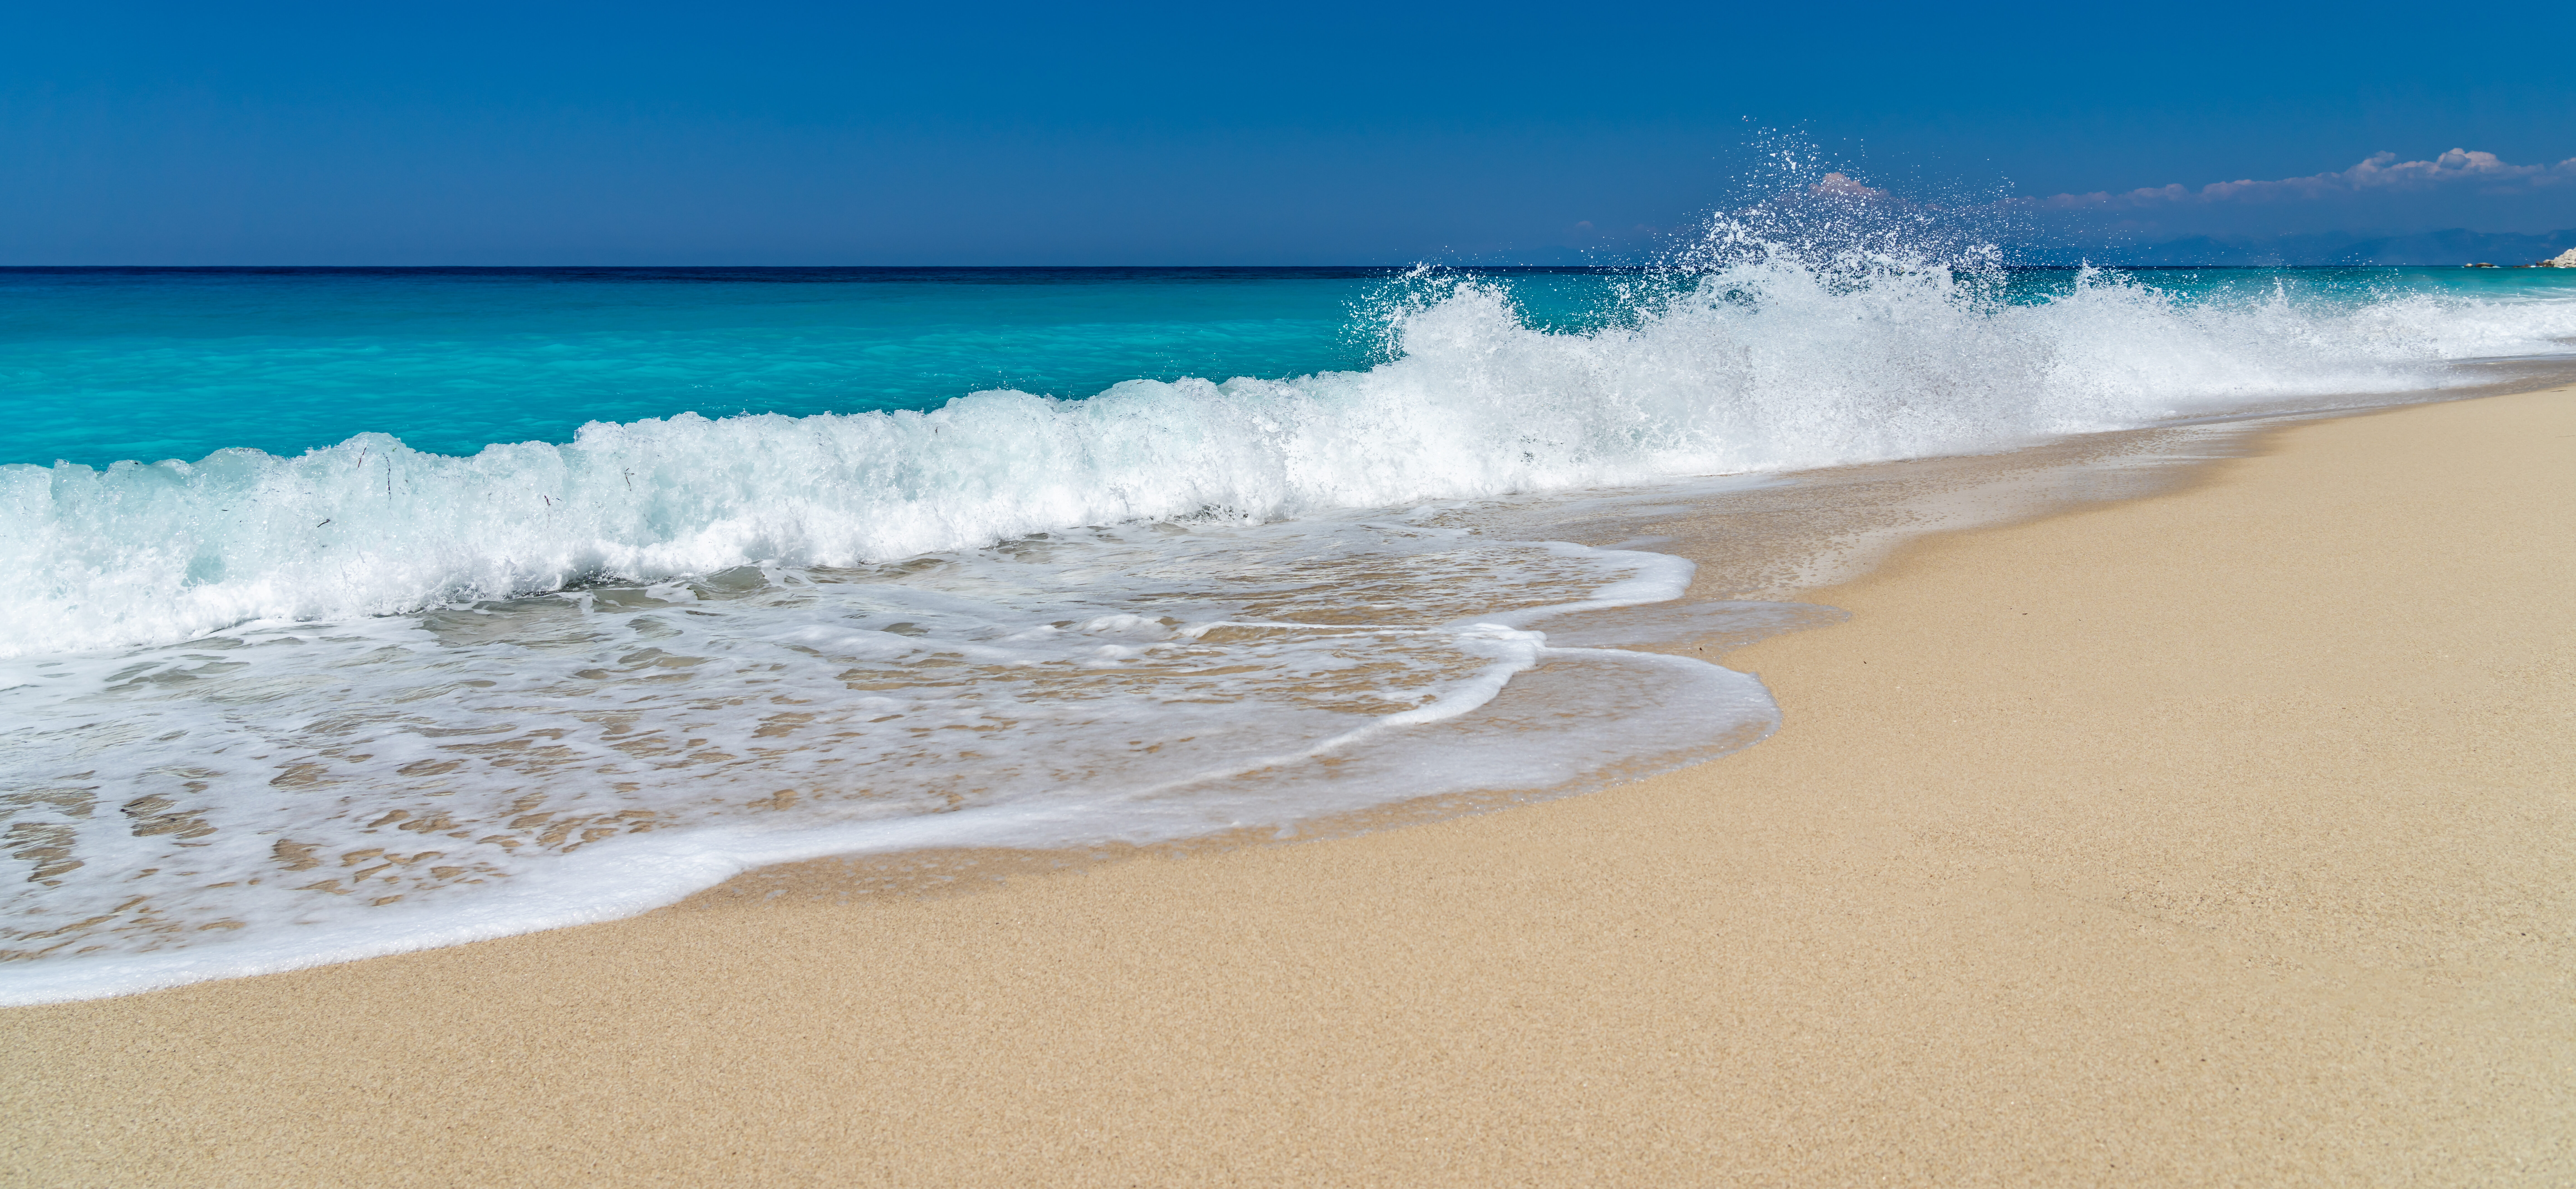 Pefkoulia: The blue beach that you enjoy even the wave